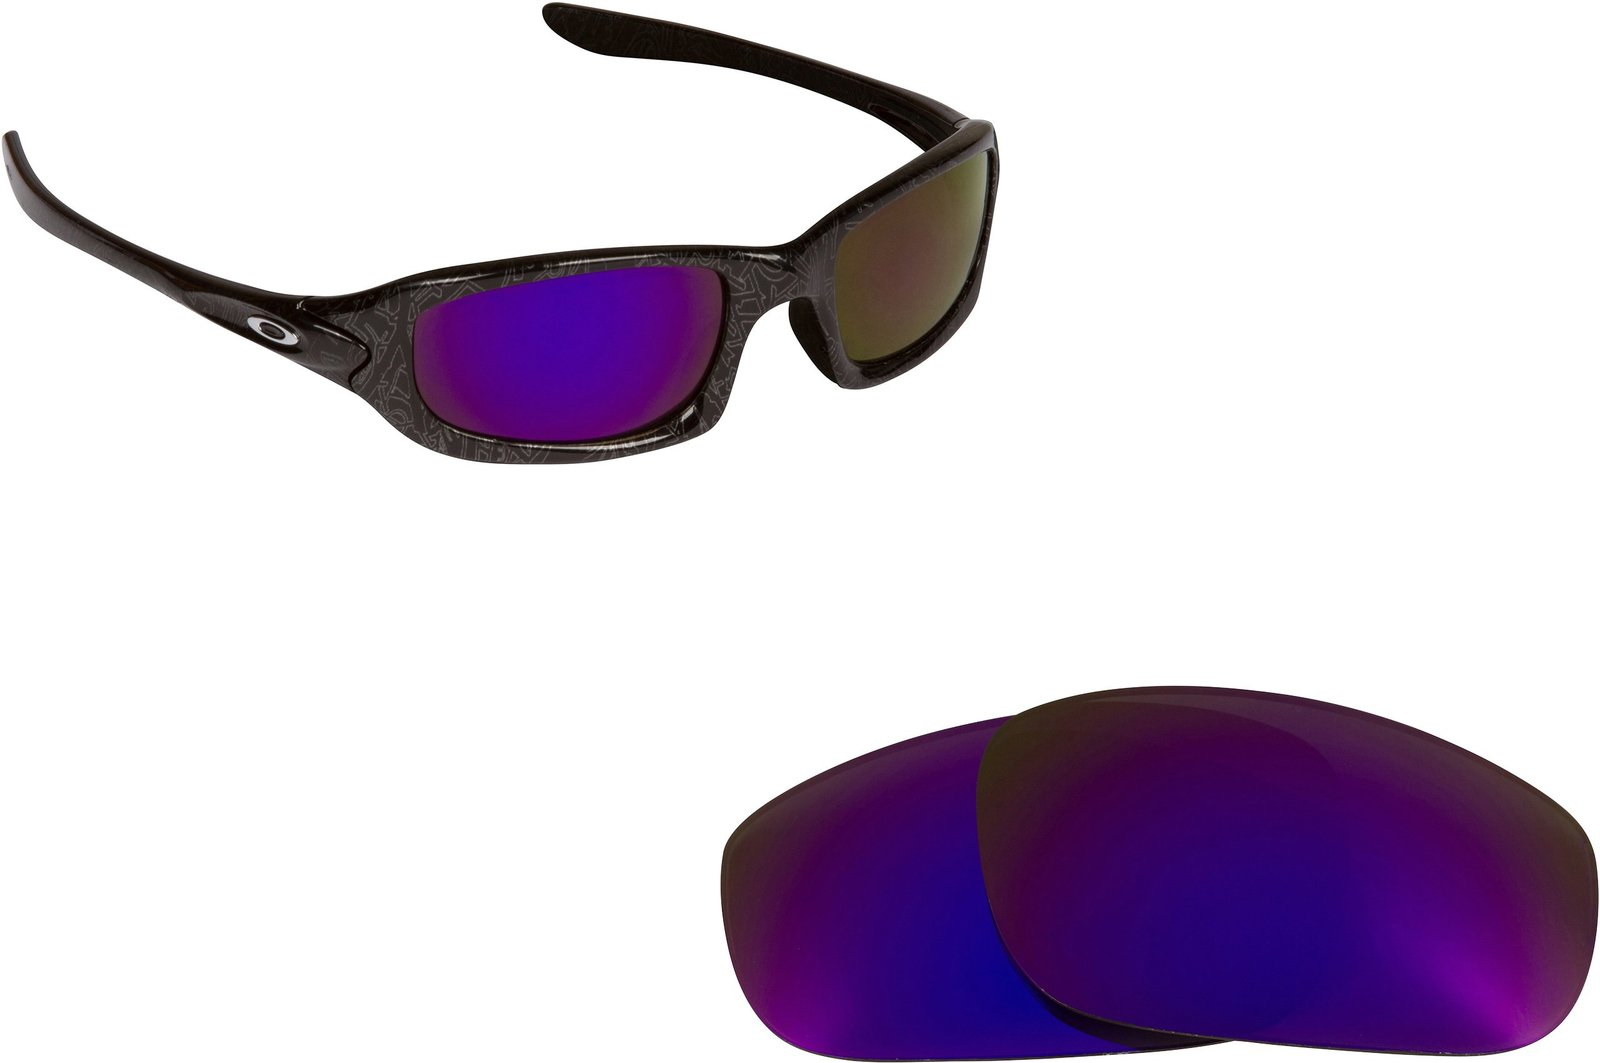 40477da502 New SEEK Replacement Lenses Oakley FIVES 4.0 and 50 similar items. 71pb  2bgm5ghl